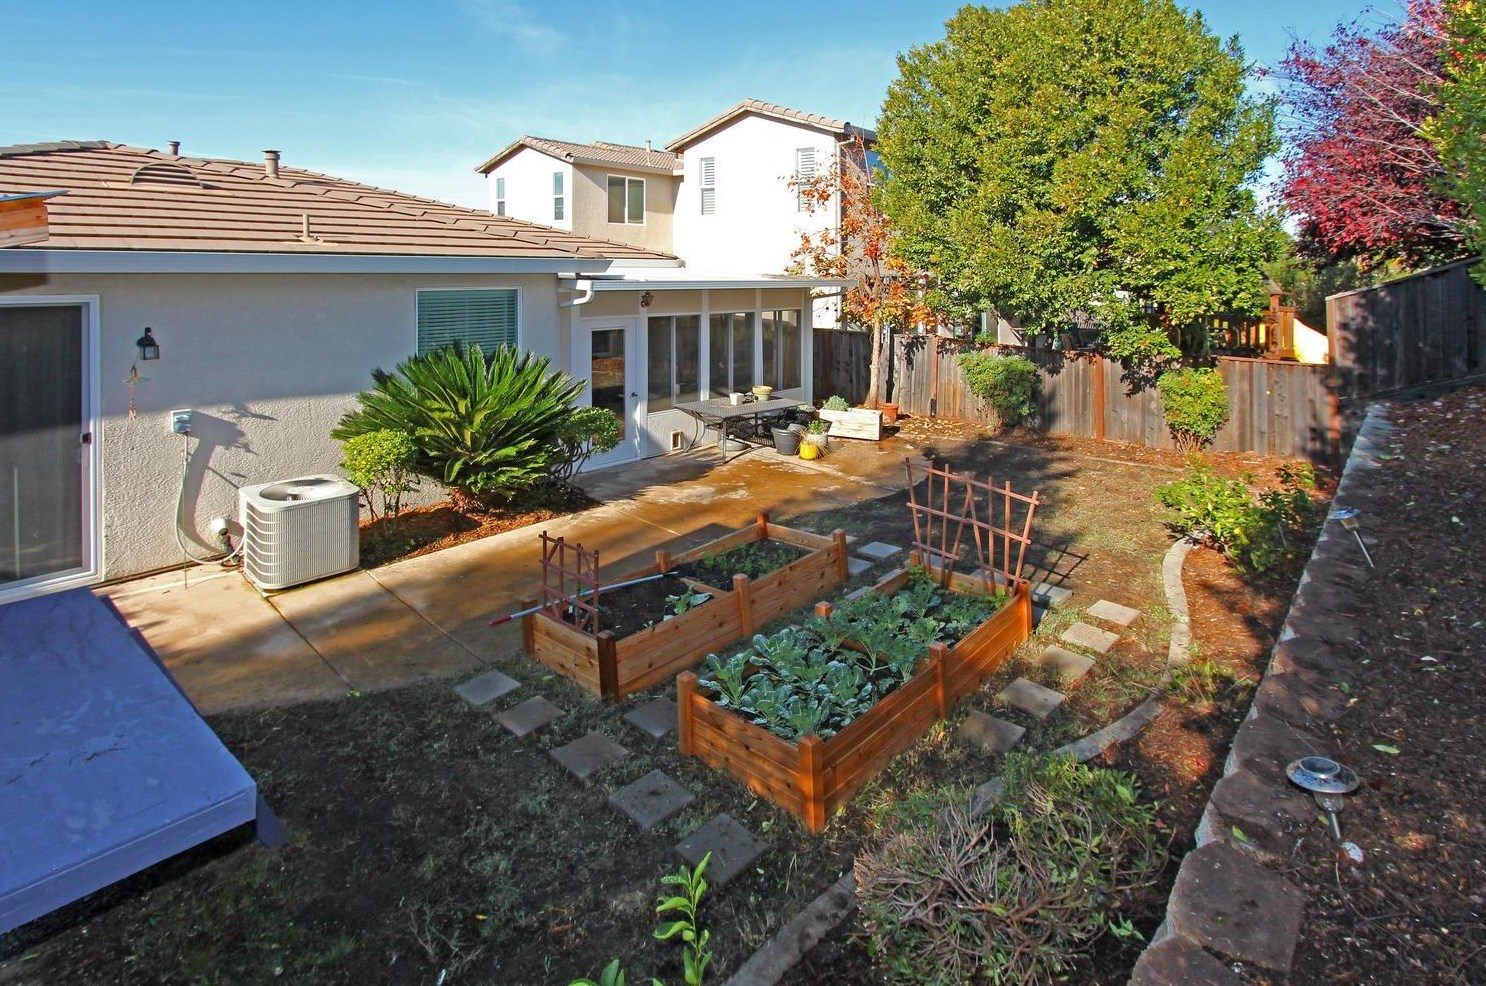 California Backyard Roseville | Backyard Ideas